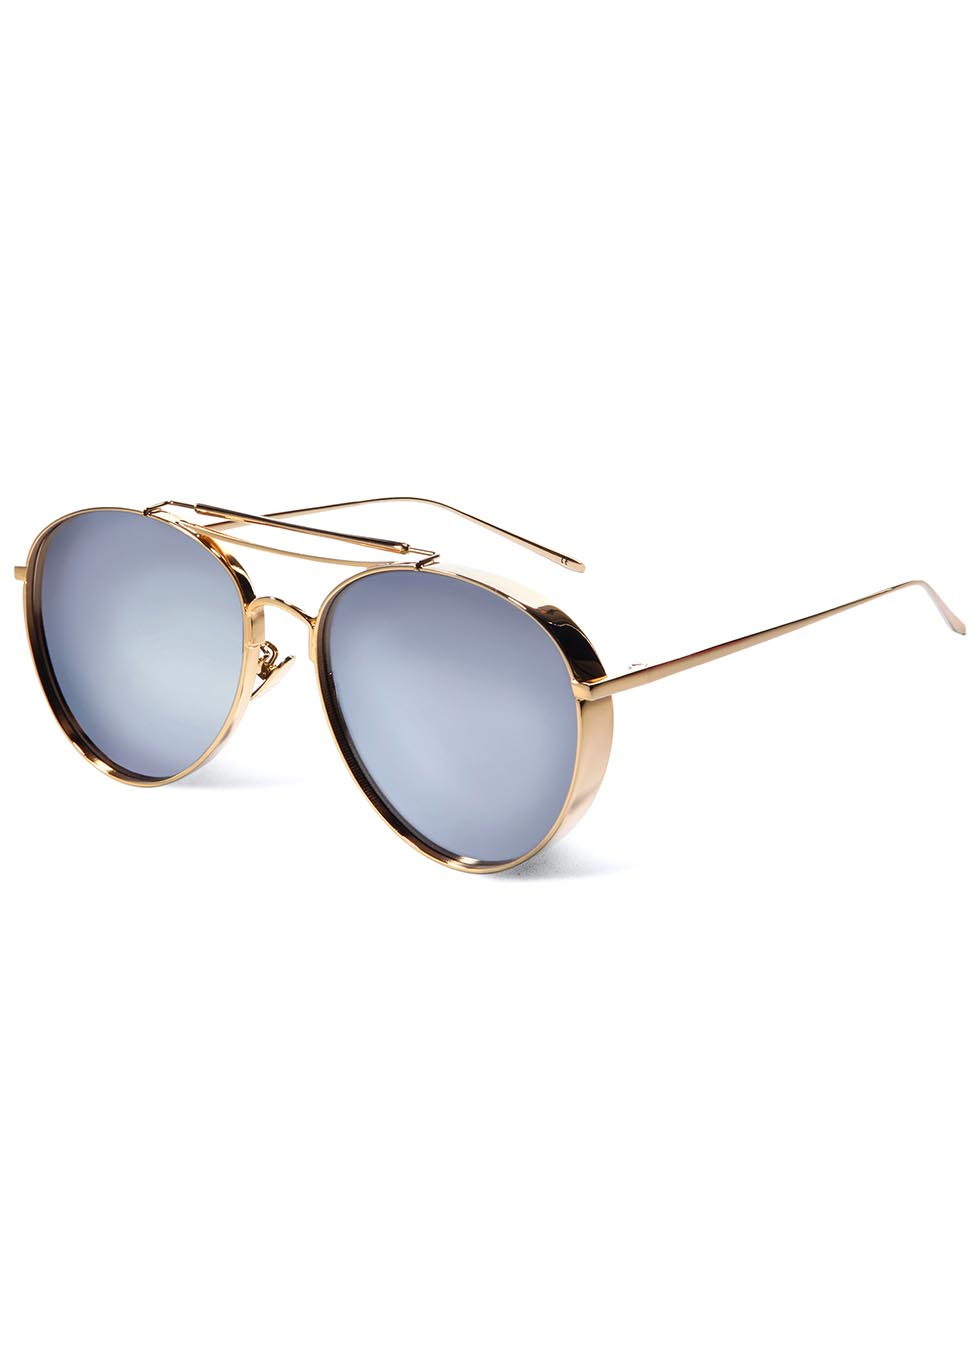 7f7e85852 Gentle Monster Big Bully Mirrored Aviator-style Sunglasses in ...